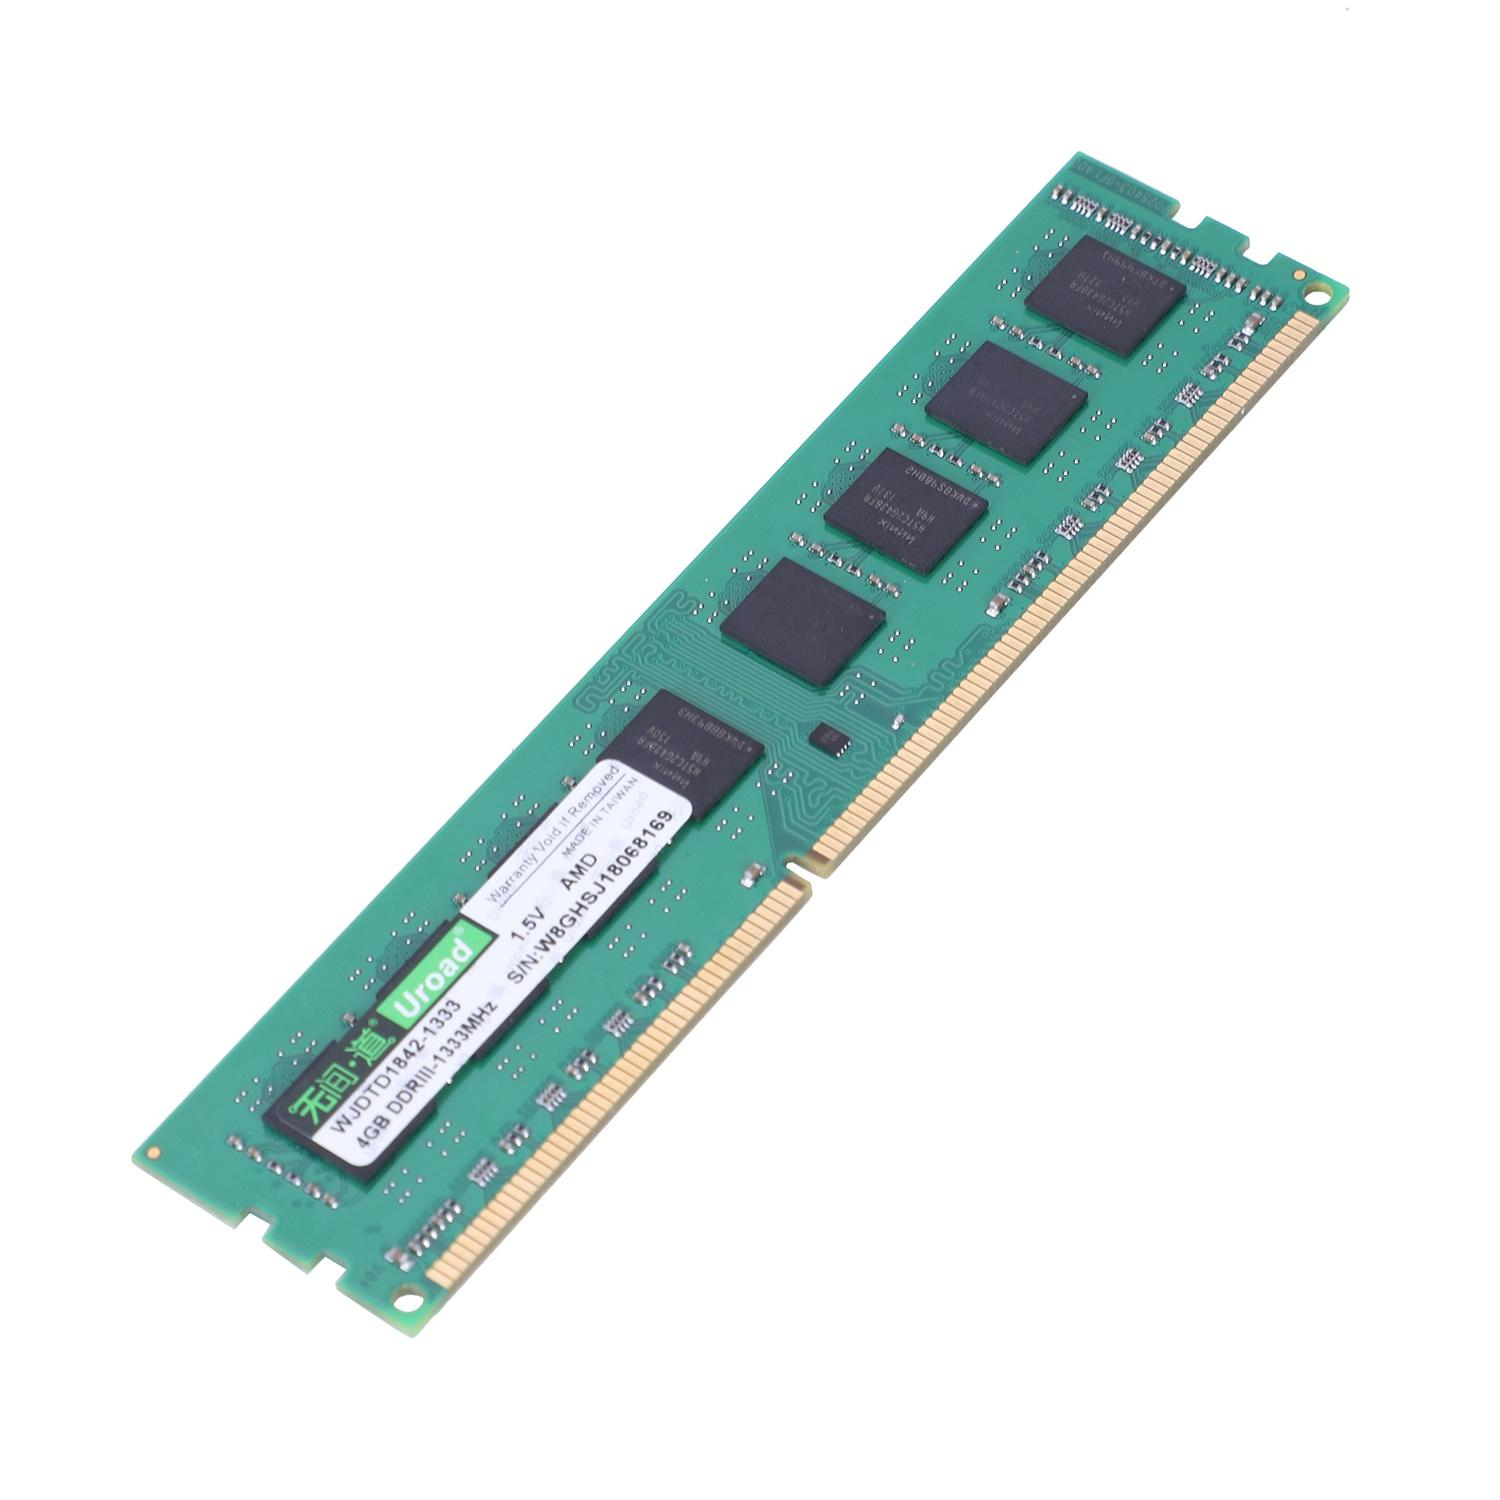 Uroad 4gb Ddr3 Ddr3i 1600mhz Ram Desktop Memory Dimm Only For Amd Computer Pc(4gb) By Jwerlyday